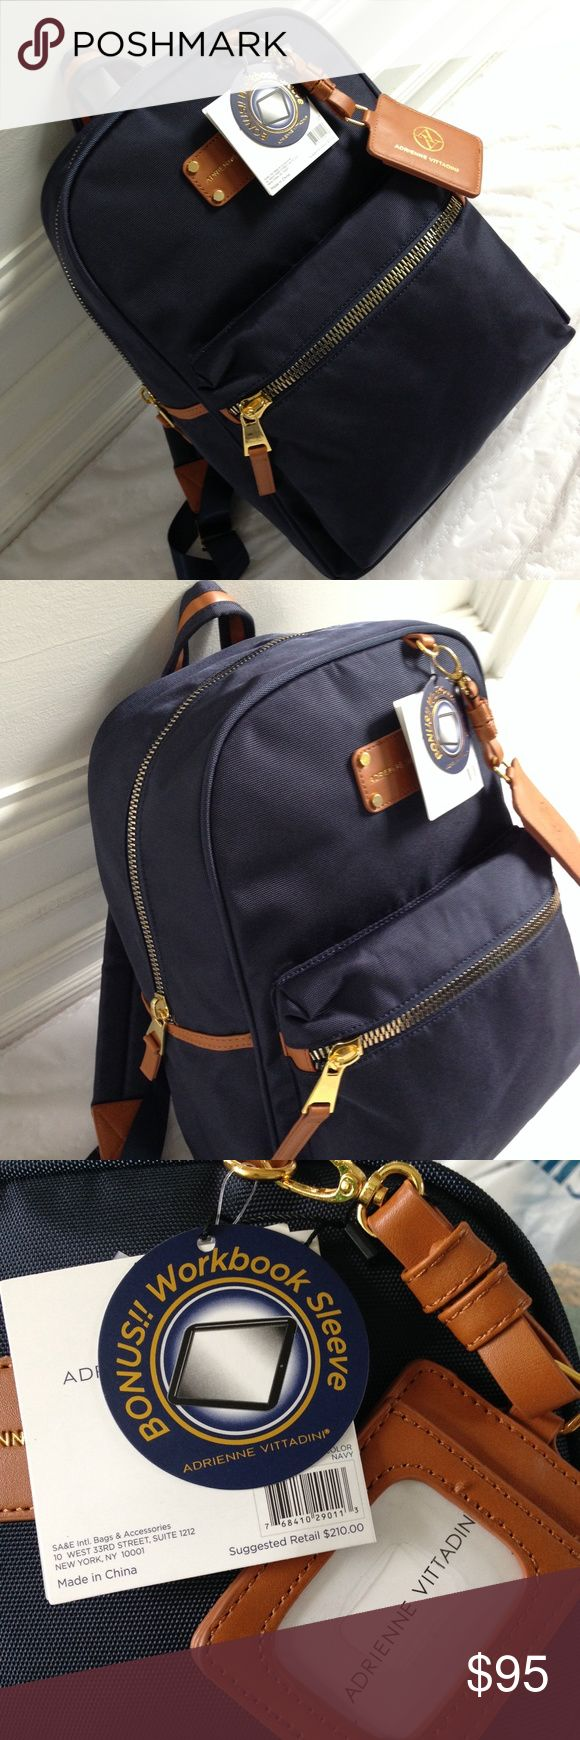 SALE Adrienne Vittadini Navy Blue Backpack Adrienne Vittadini navy blue high density nylon backpack with tan accents and gold tone zippers and hardware. I.D. Tag! Great for travel! Multi use! Interior Padded sleeve compatible with most workbooks. 2 more open pockets. Interior lined. 16 1/2 x 12 x 6 1/2 Comfortable shoulder straps. Front zipper pocket. 16 NWT New with tags! Retail $210 Adrienne Vittadini Bags Backpacks